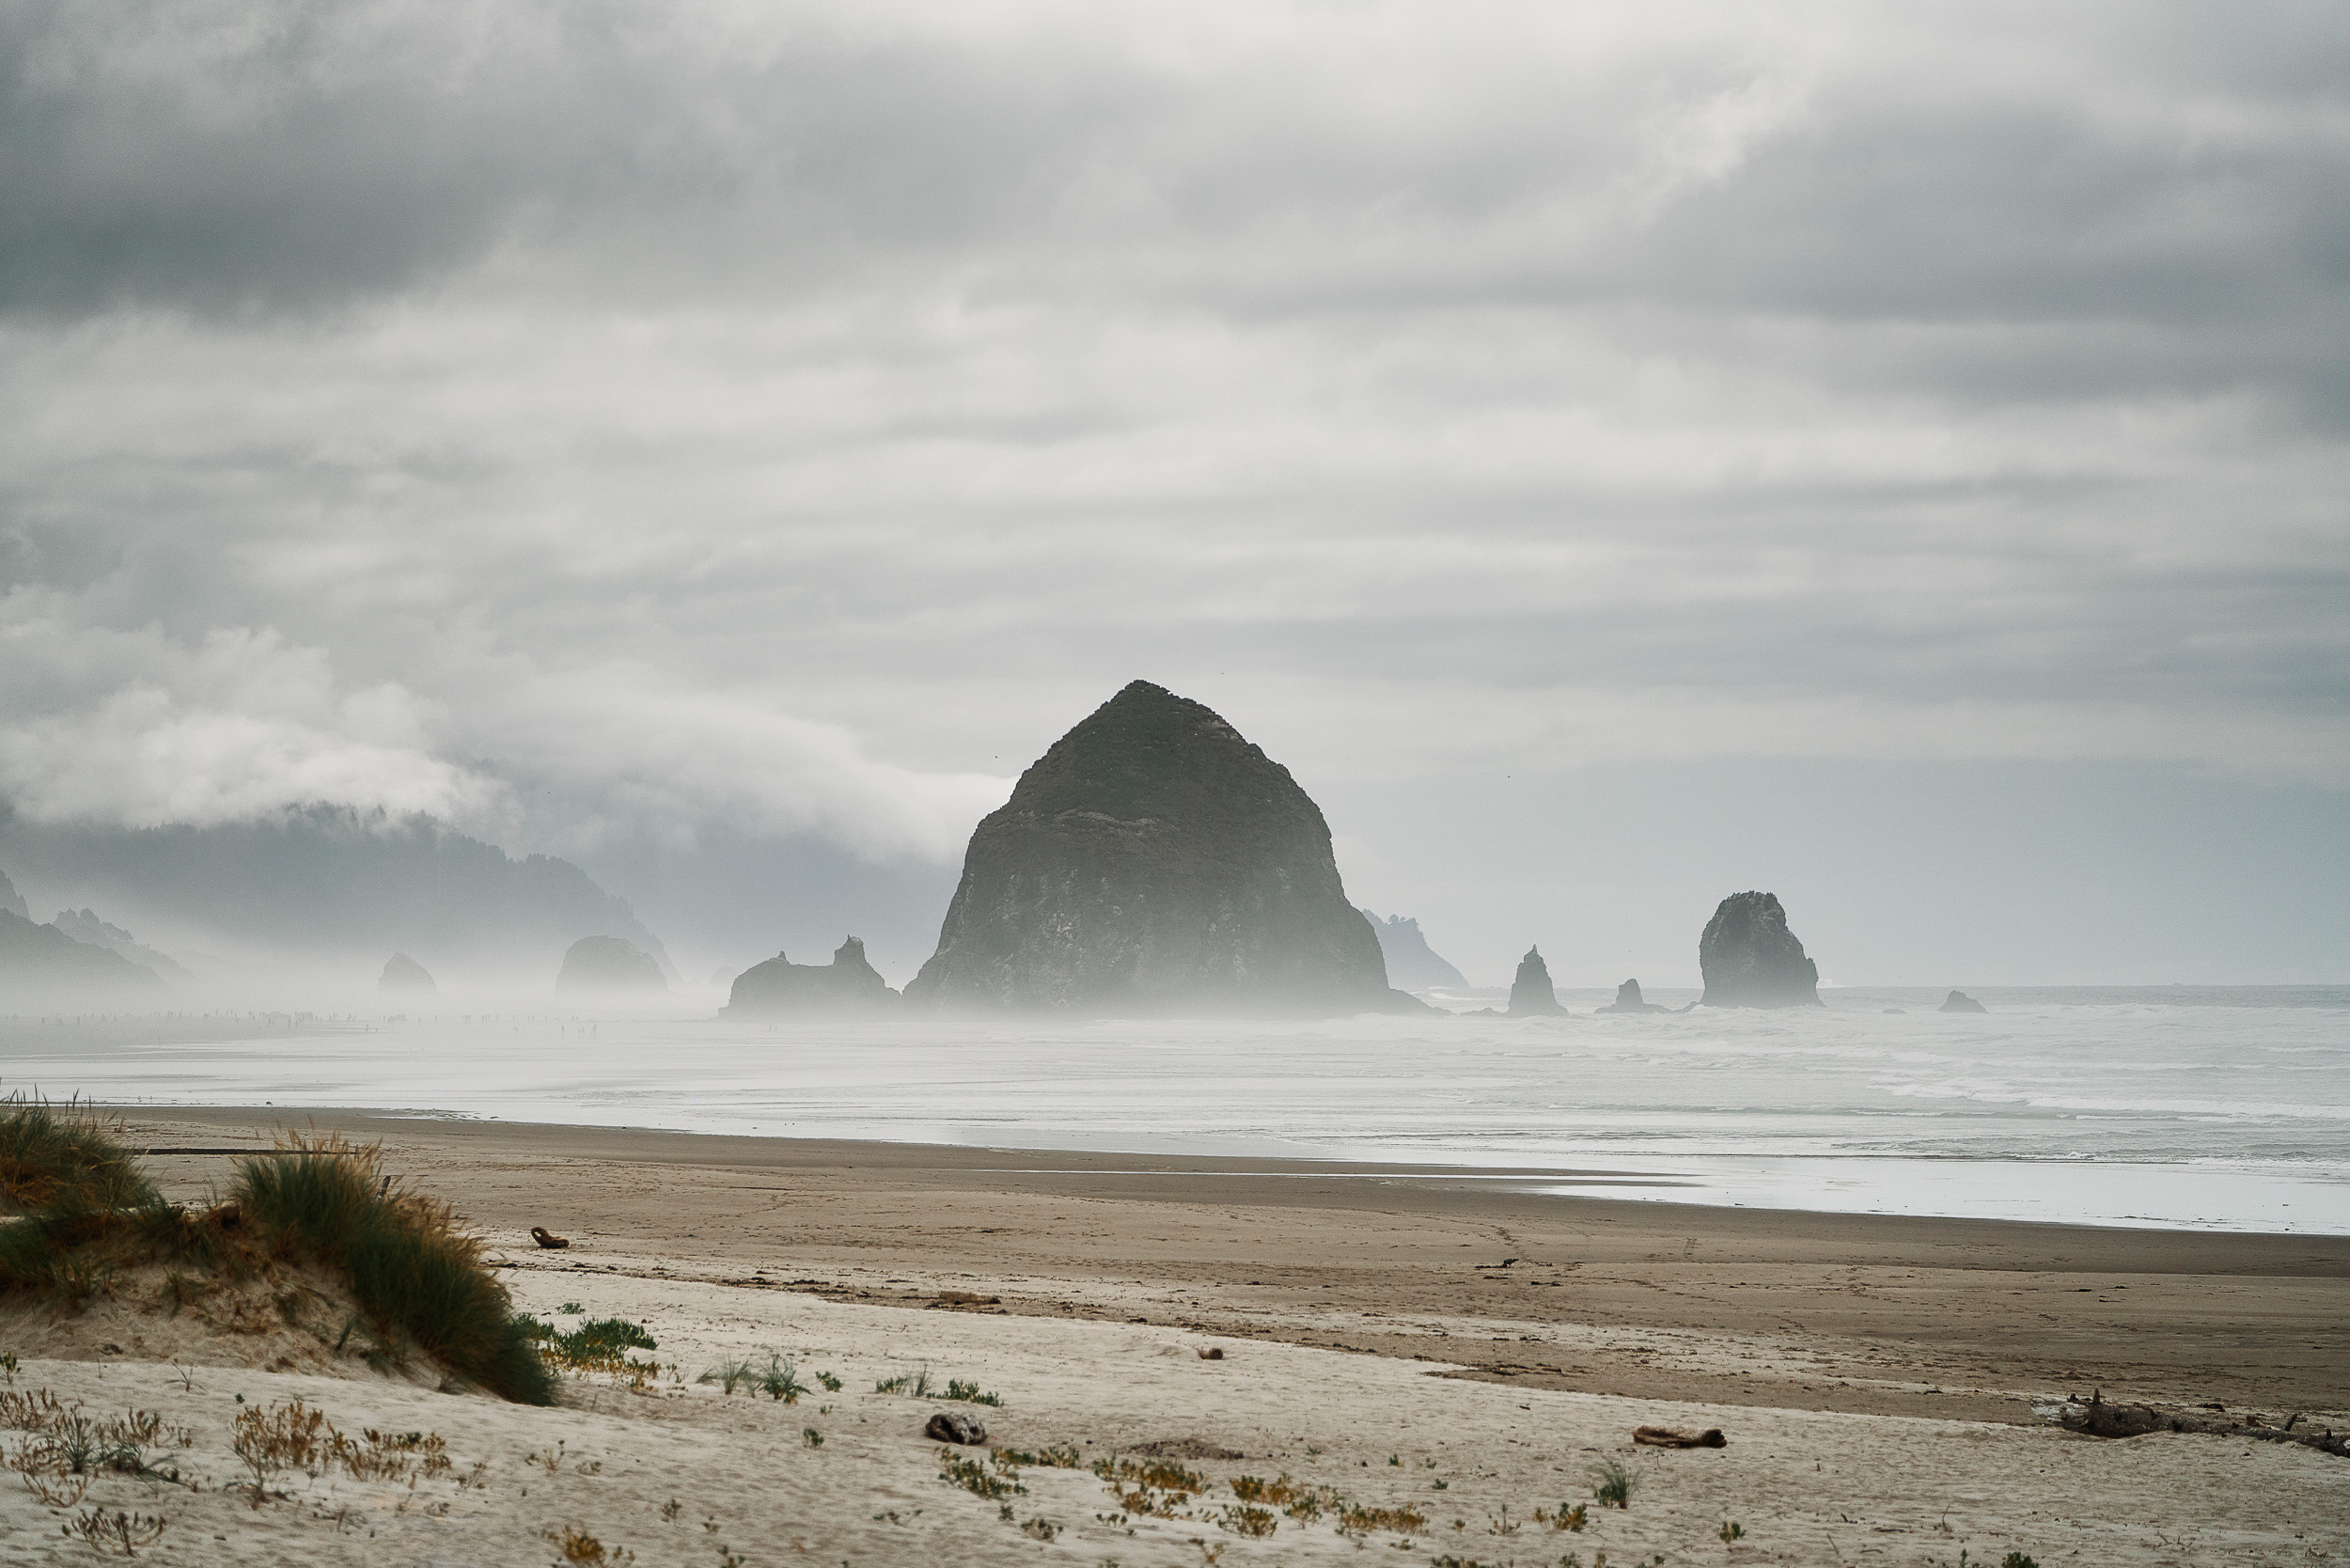 Haystack Rock at Cannon Beach, OR